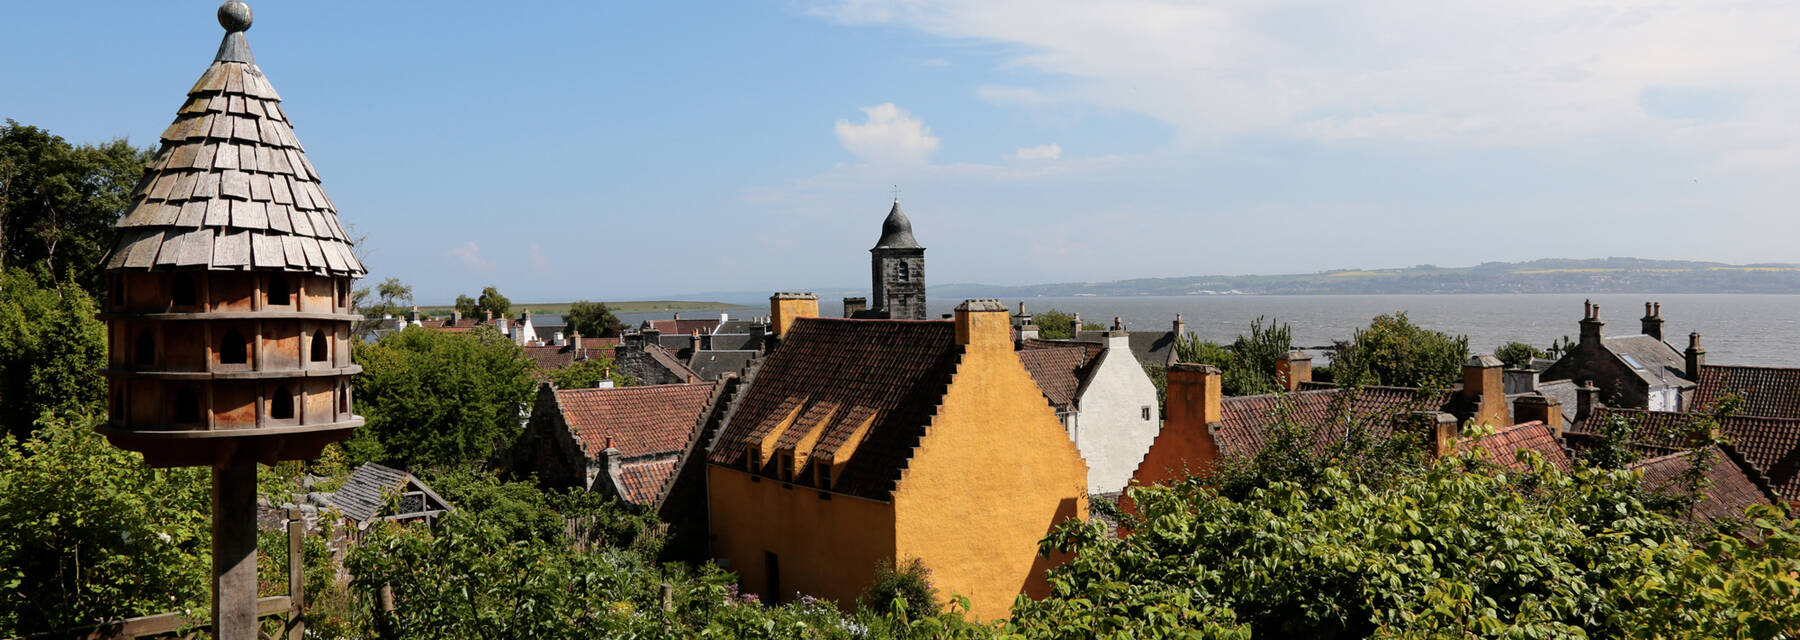 View over Culross with birdtable in foreground